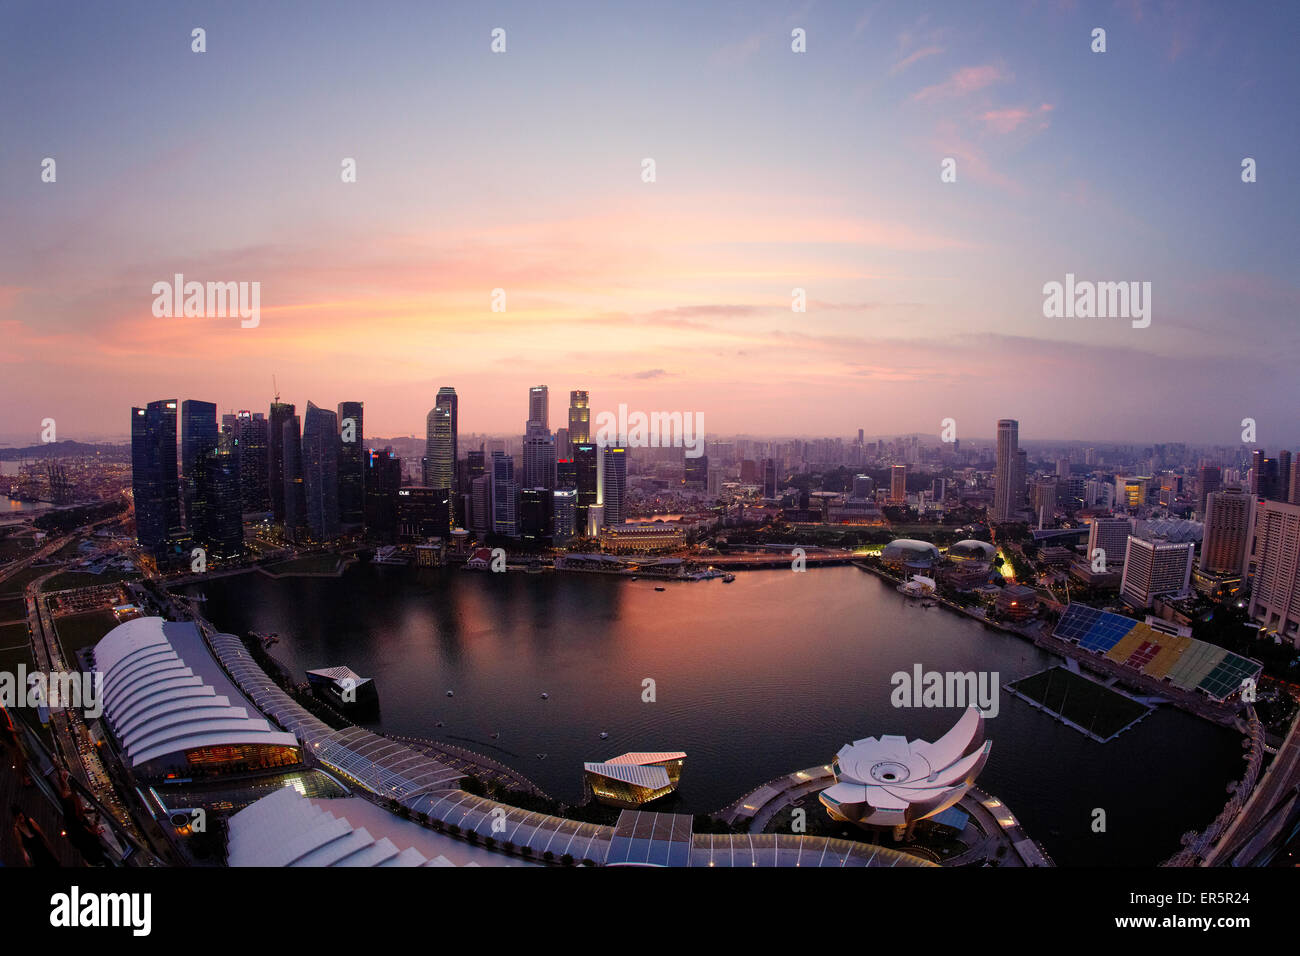 View over Marina Bay to skyline at night, Downtown core, Singapore Stock Photo